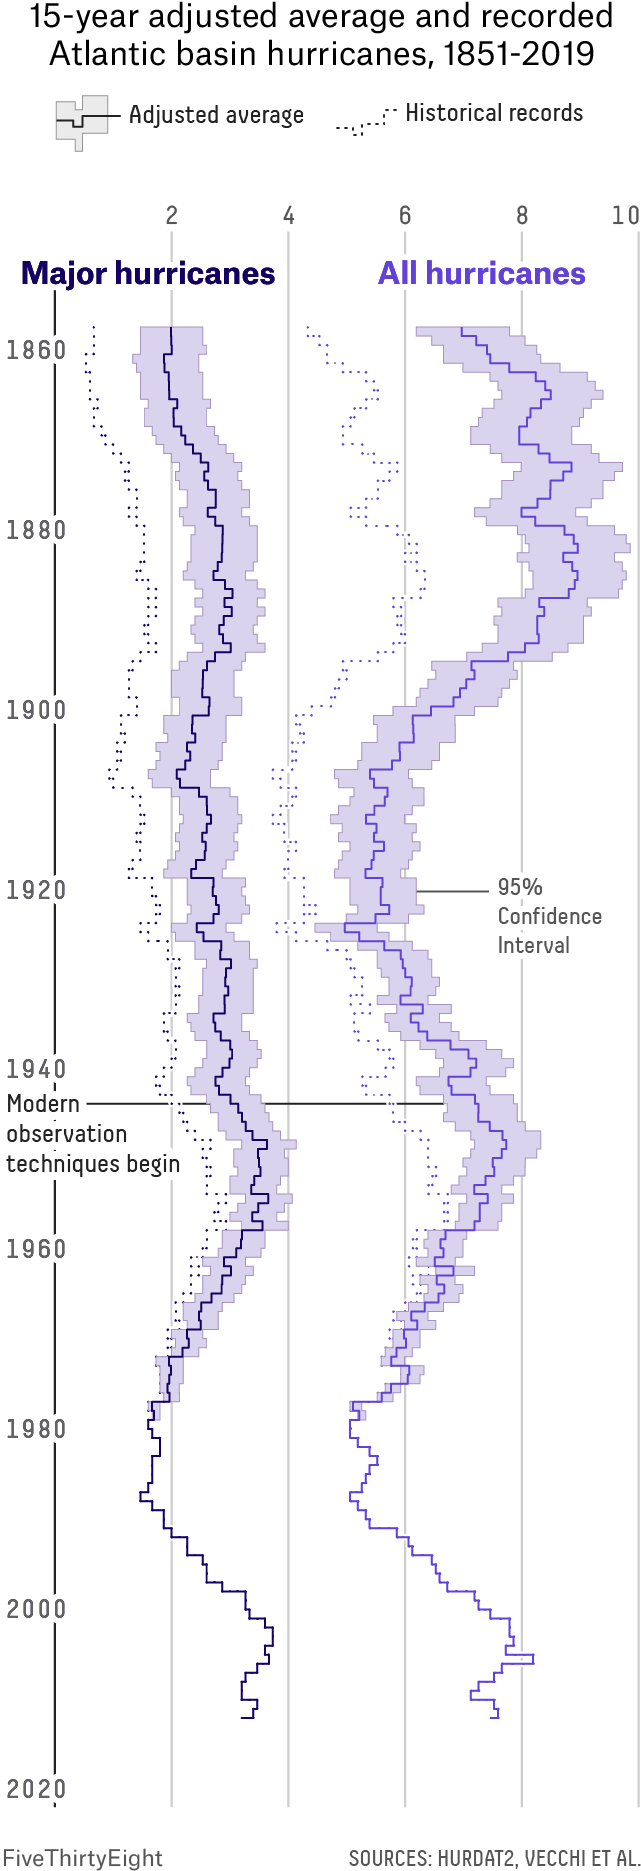 A line chart showing lines for the 15-year smoothed average number of Atlantic basin hurricanes and major hurricanes between 1851 and 2019 as well as the adjusted average including hurricanes missing from historical records. The number of hurricanes missing is higher in the 1800s and becomes progressively similar to the records toward the 1960s.